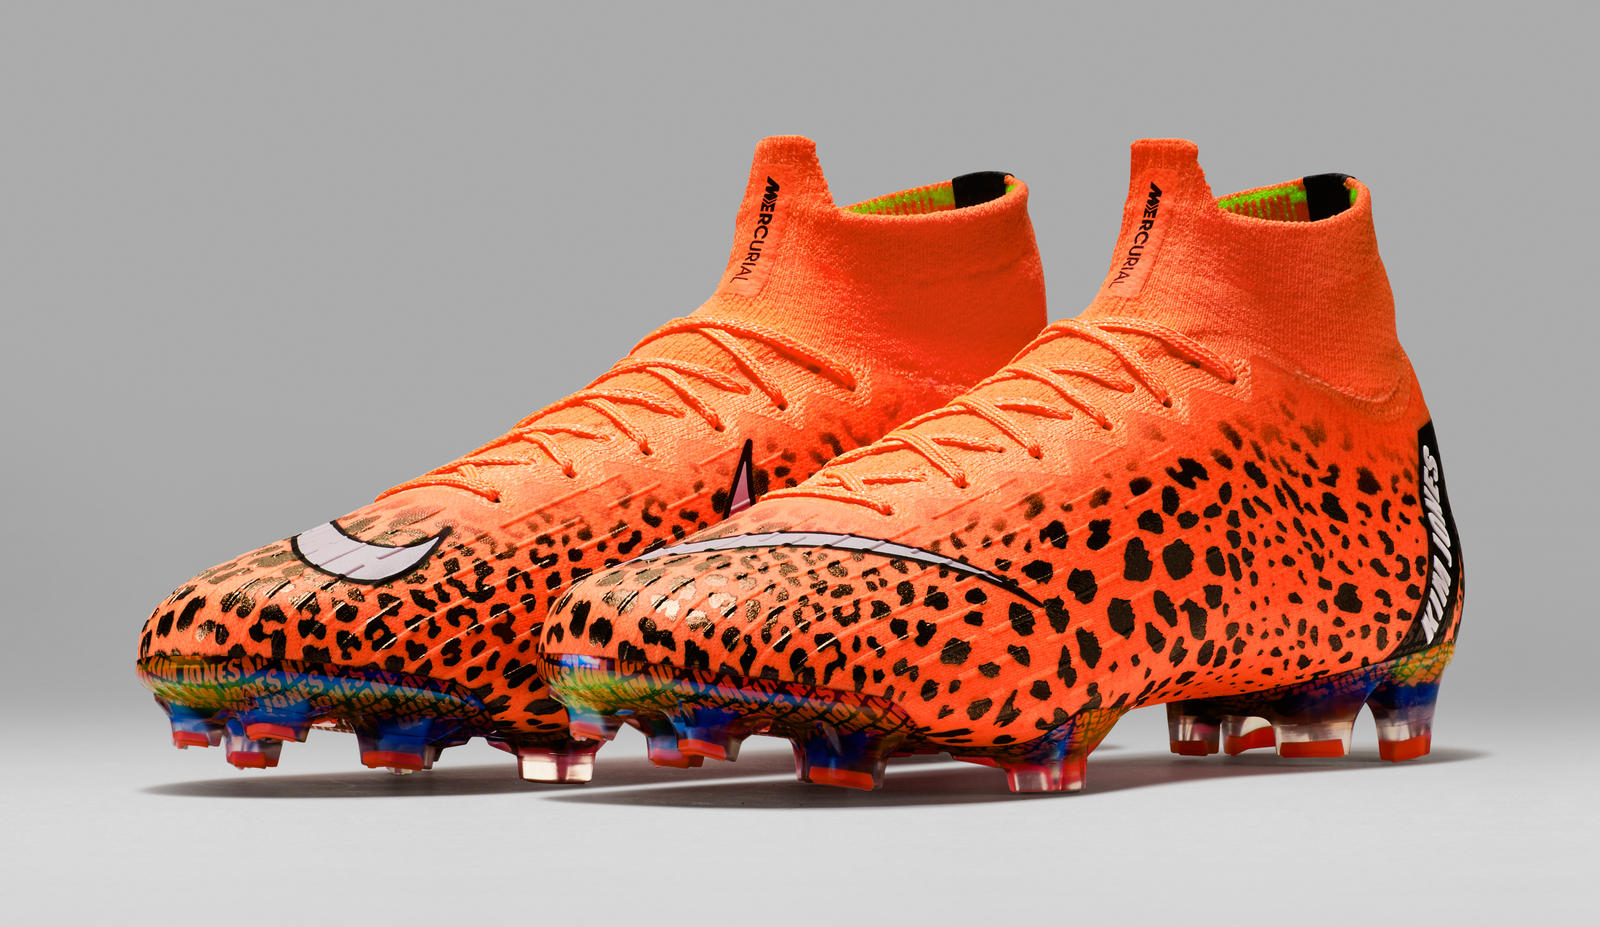 7100807b89 Nike Mercurial Superfly Iii Blue And Orange - Musée des ...